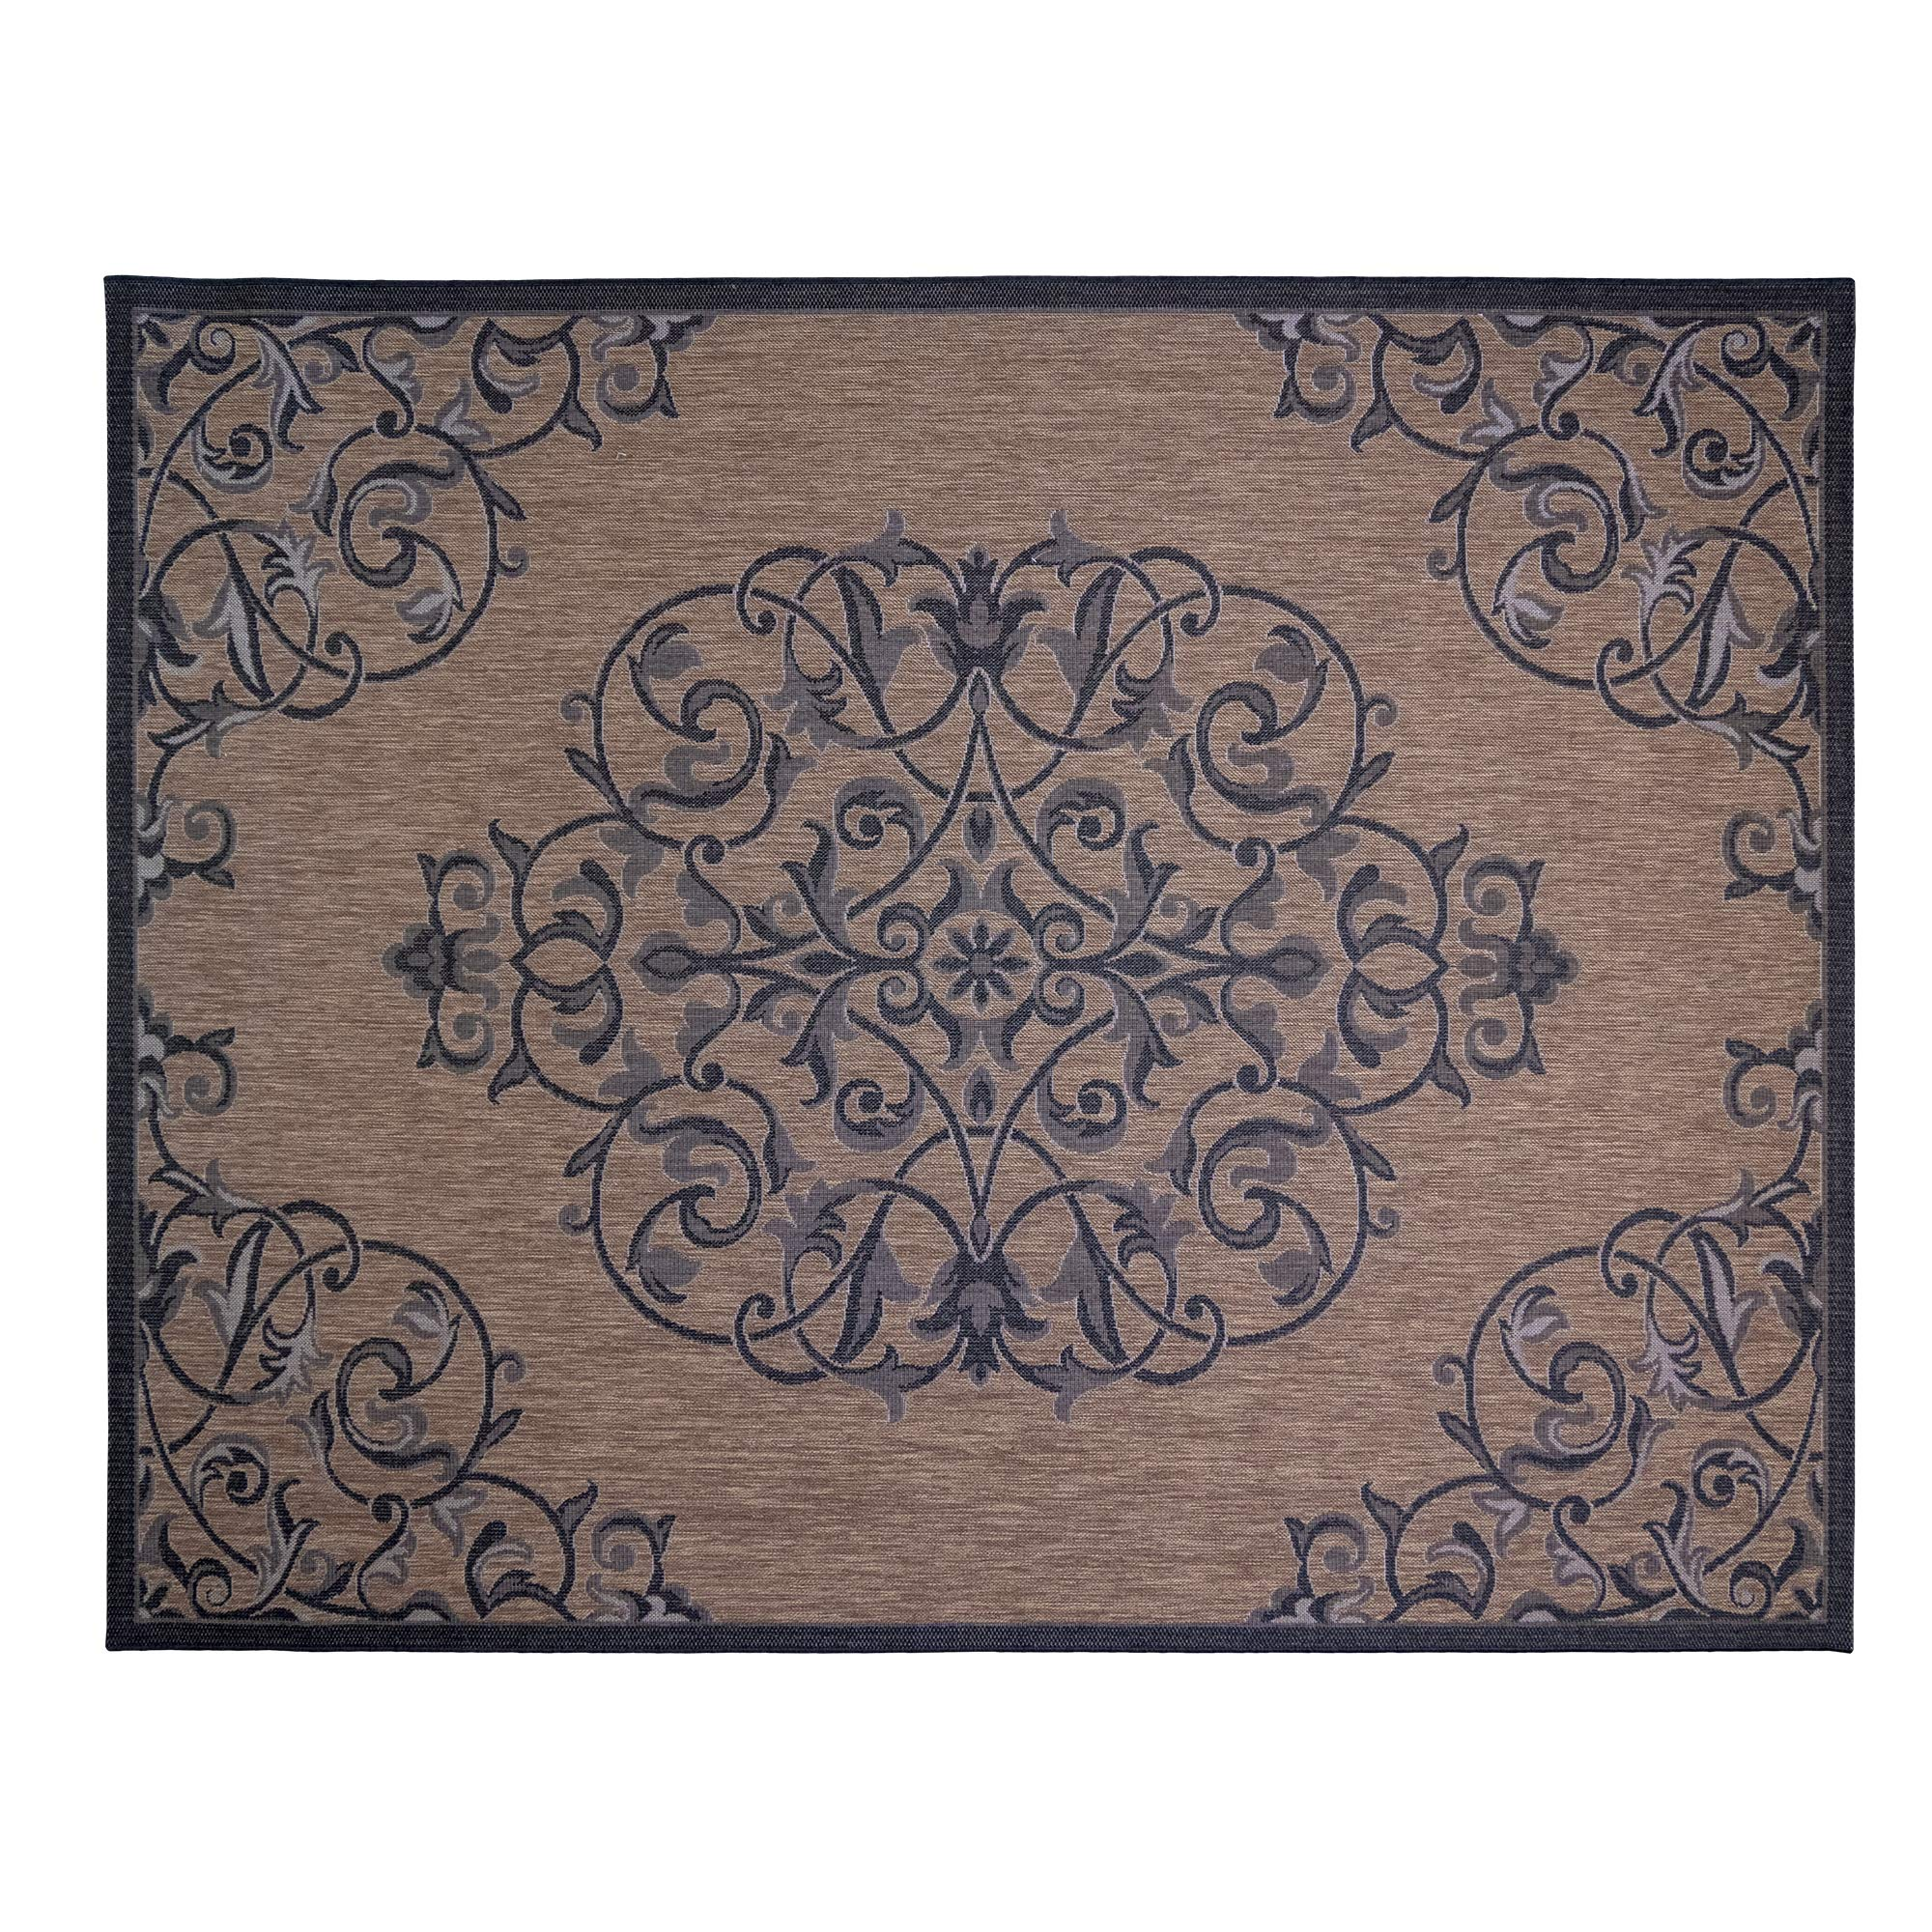 Gertmenian 21649 Nautical Tropical Carpet Outside Patio Rug, 8x10 Large, Brown Center Medallion